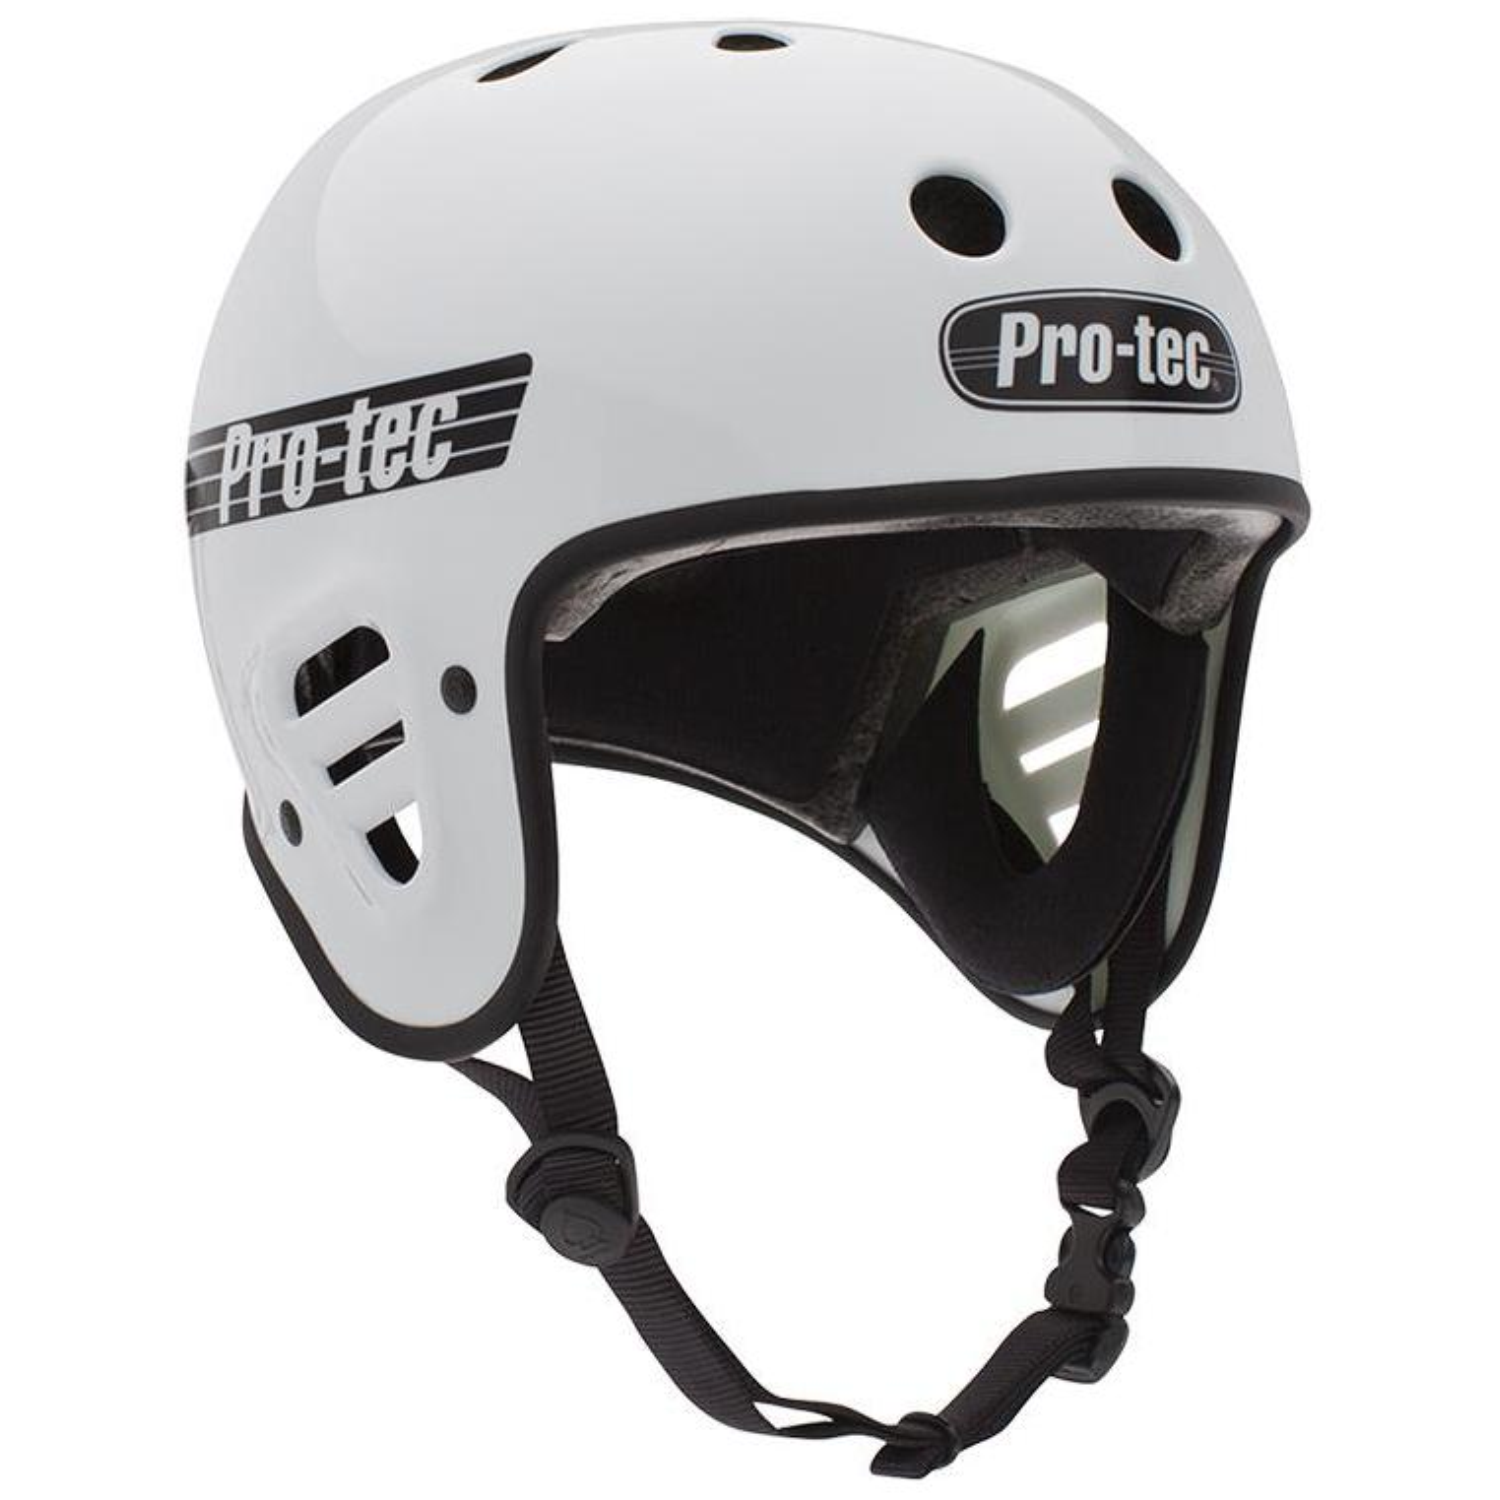 Casco Pro-tec Full Cut gloss white